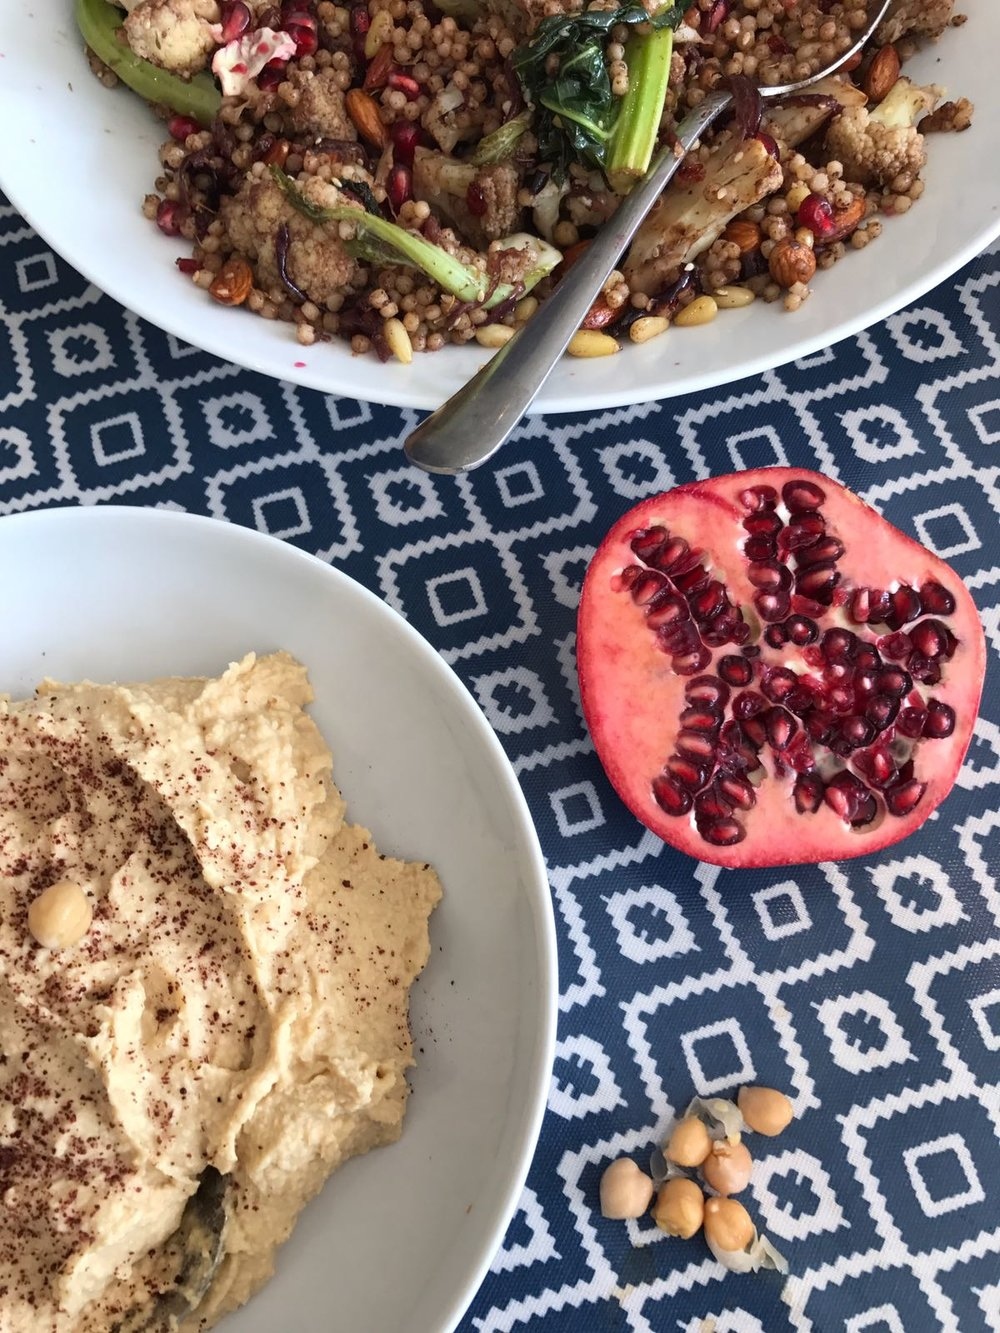 Hummus and  Fried Cauliflower and Caramelized Red Onions, Toasted Israeli Couscous and Almonds